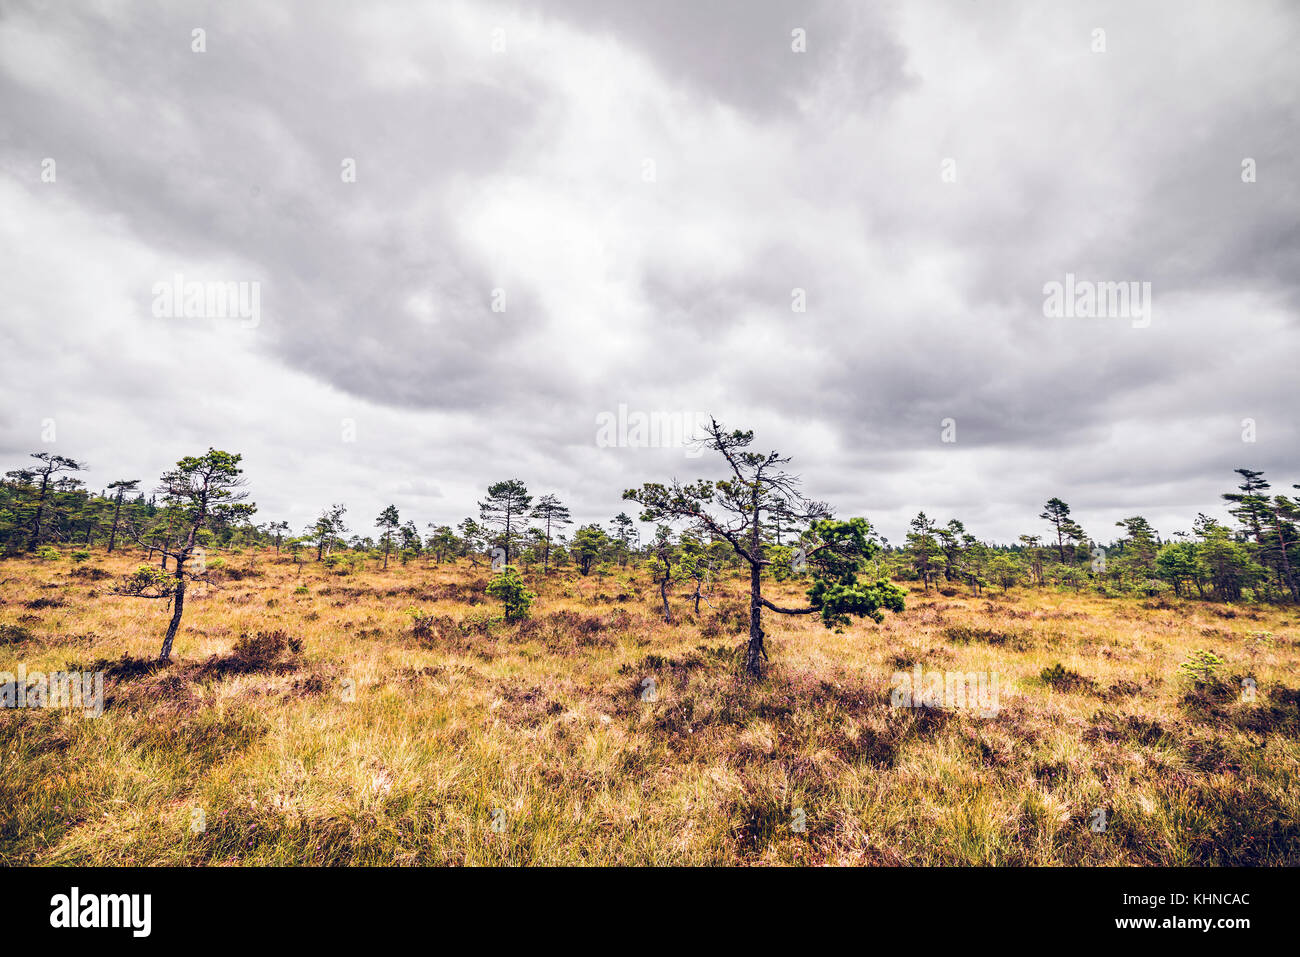 Wilderness landscape with small pine trees in a prairie look under a cloudy grey sky - Stock Image